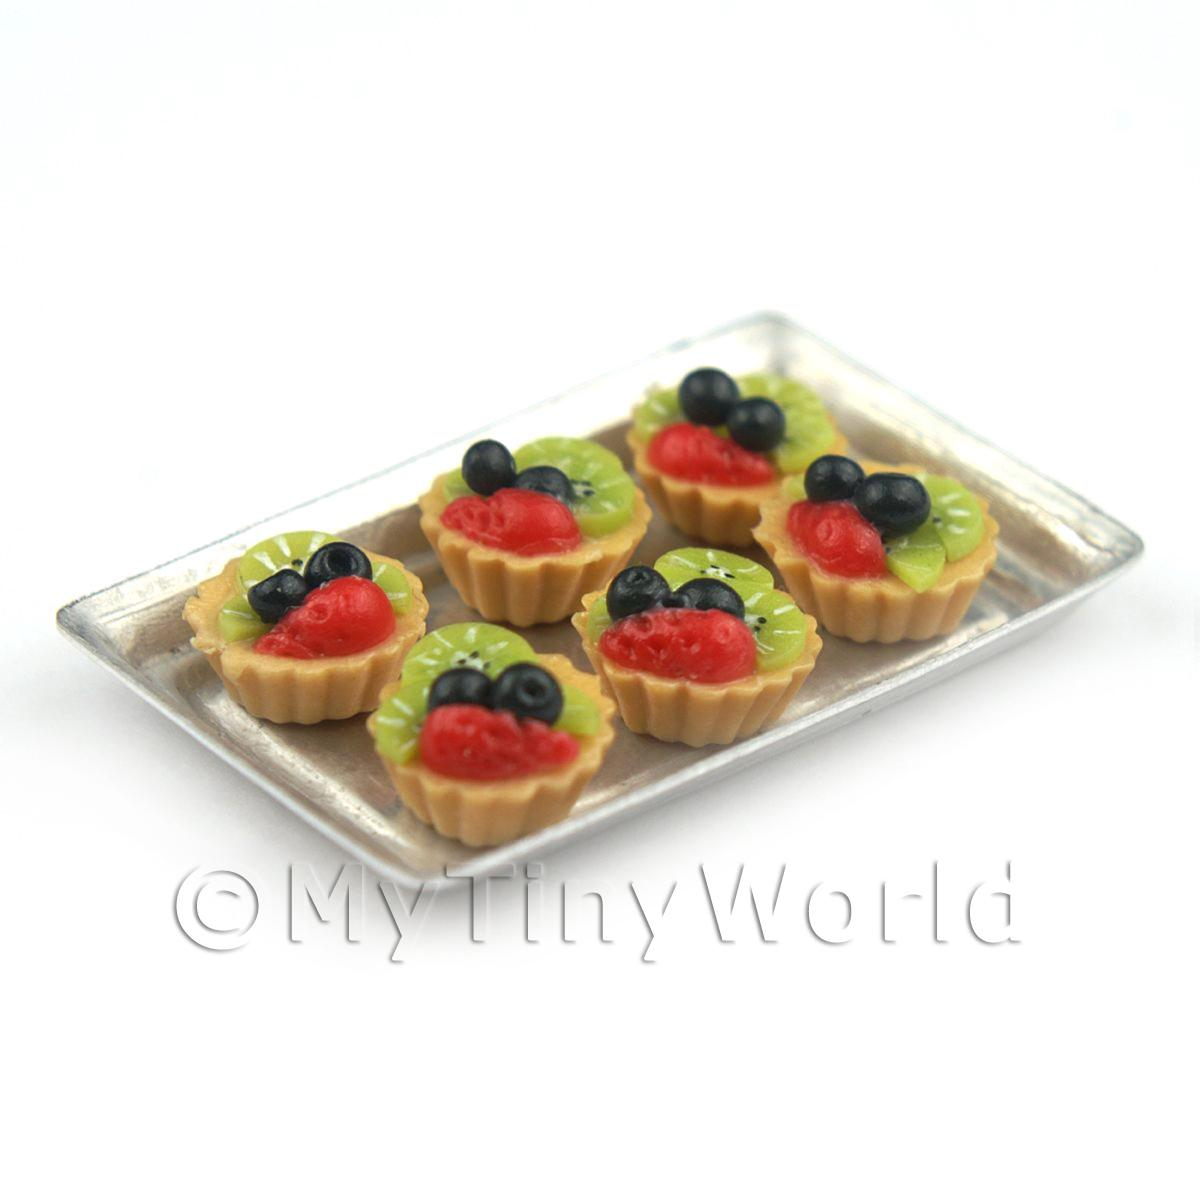 6 Loose Dolls House Miniature  Black Cherry and Kiwi Tarts on a Tray